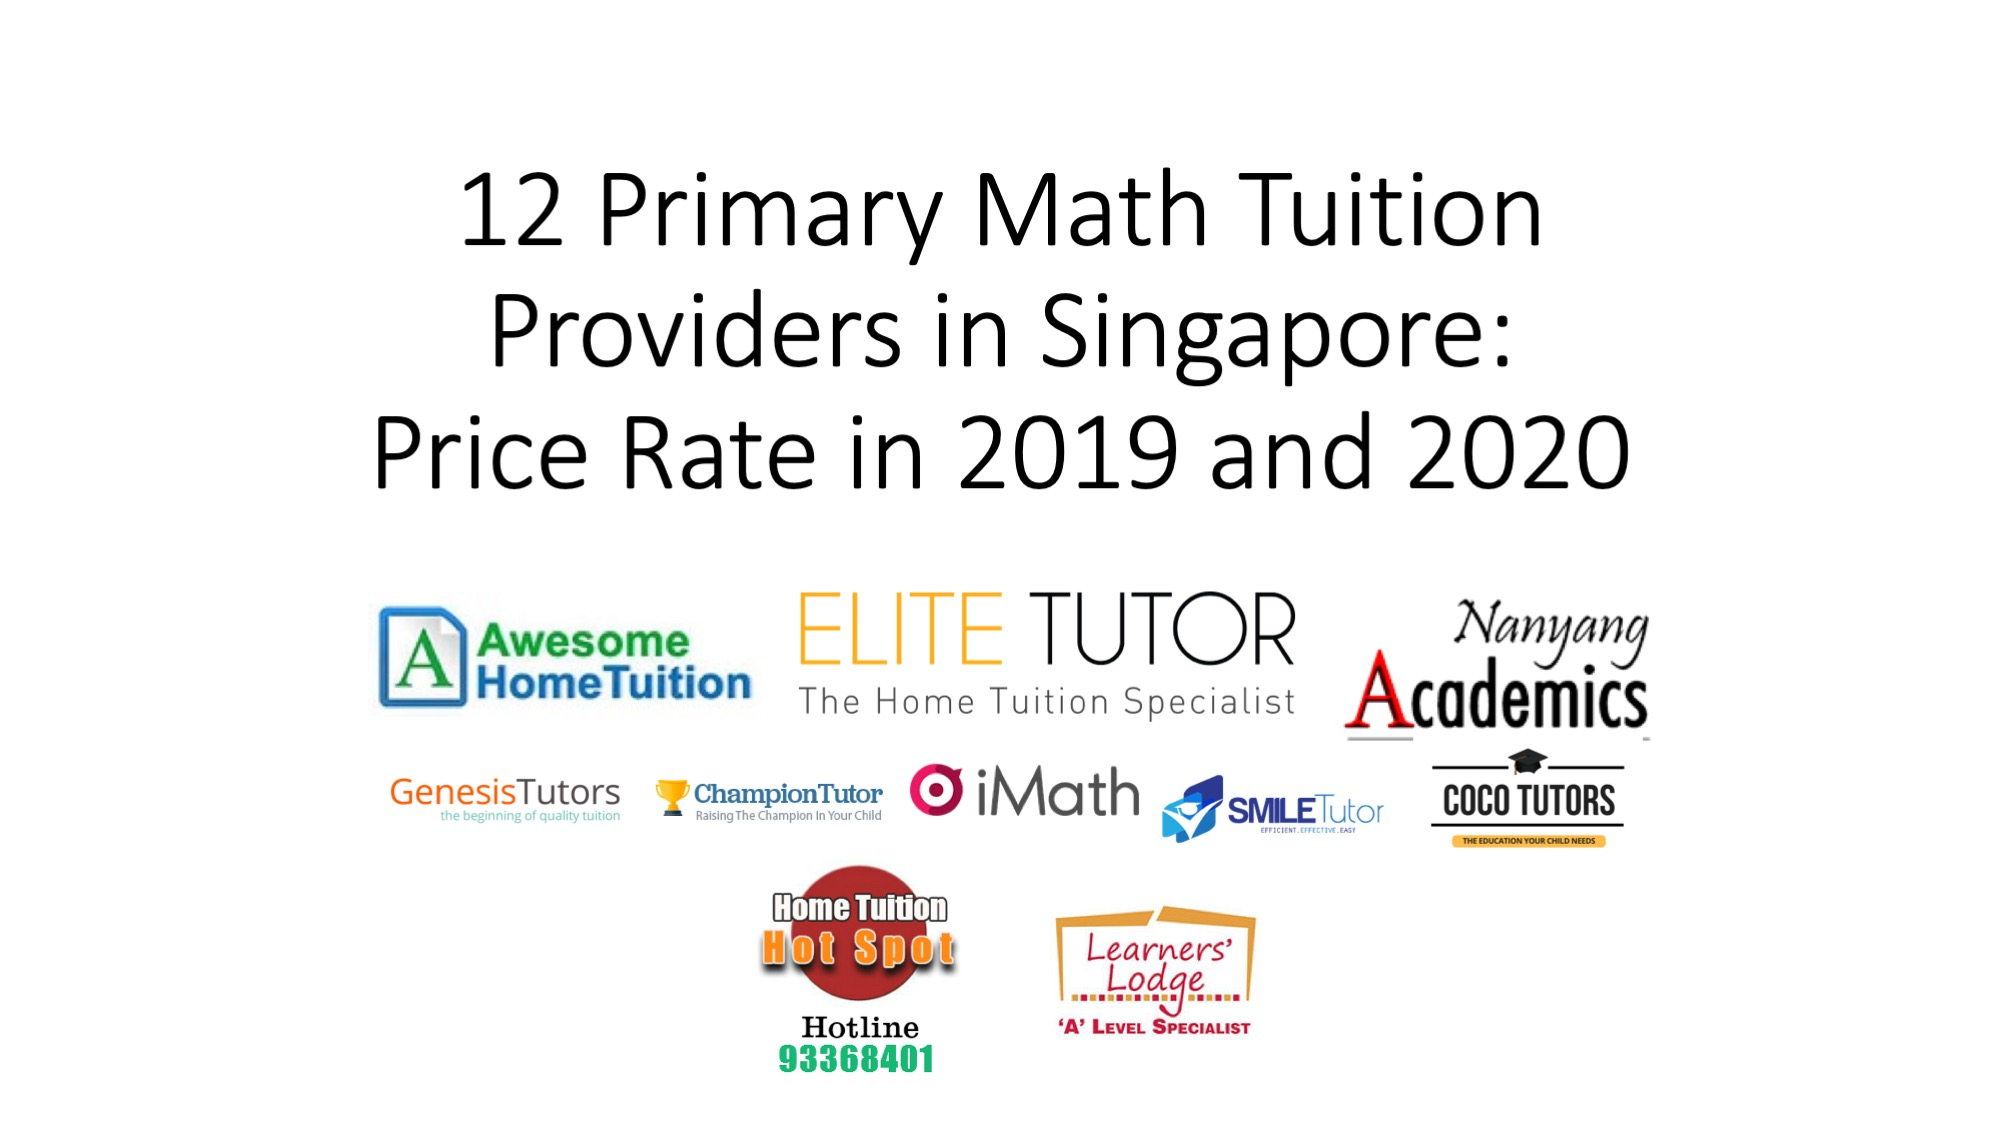 12 Primary Math Tuition Providers in Singapore: Price Rate in 2019 and 2020